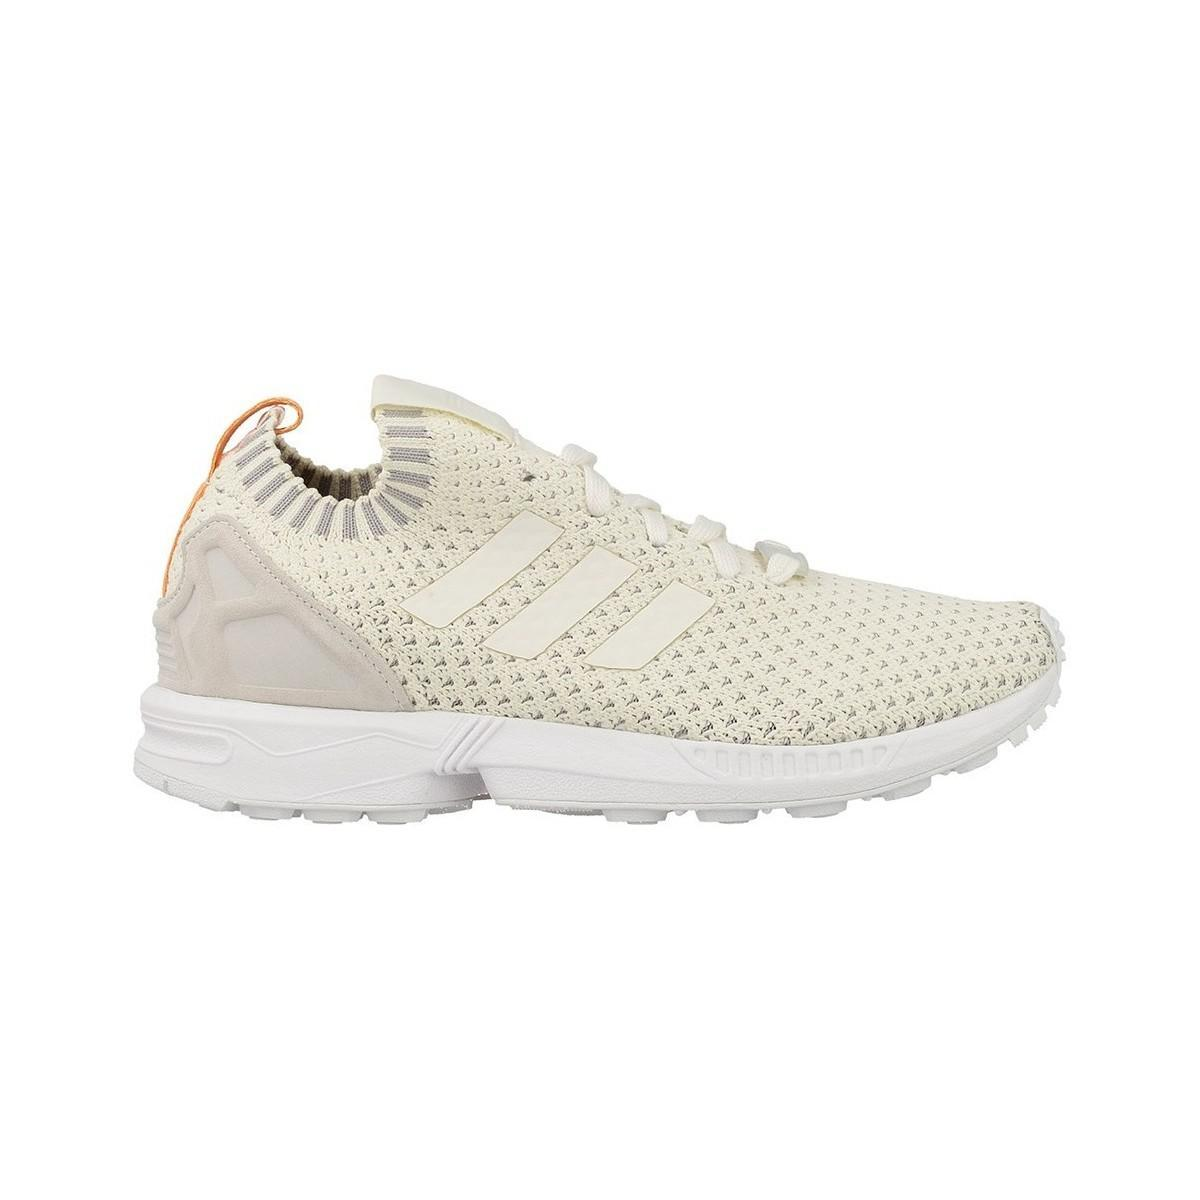 47da2732c10f8 Adidas Zx Flux Pk W Women s Shoes (trainers) In Beige in Natural - Lyst